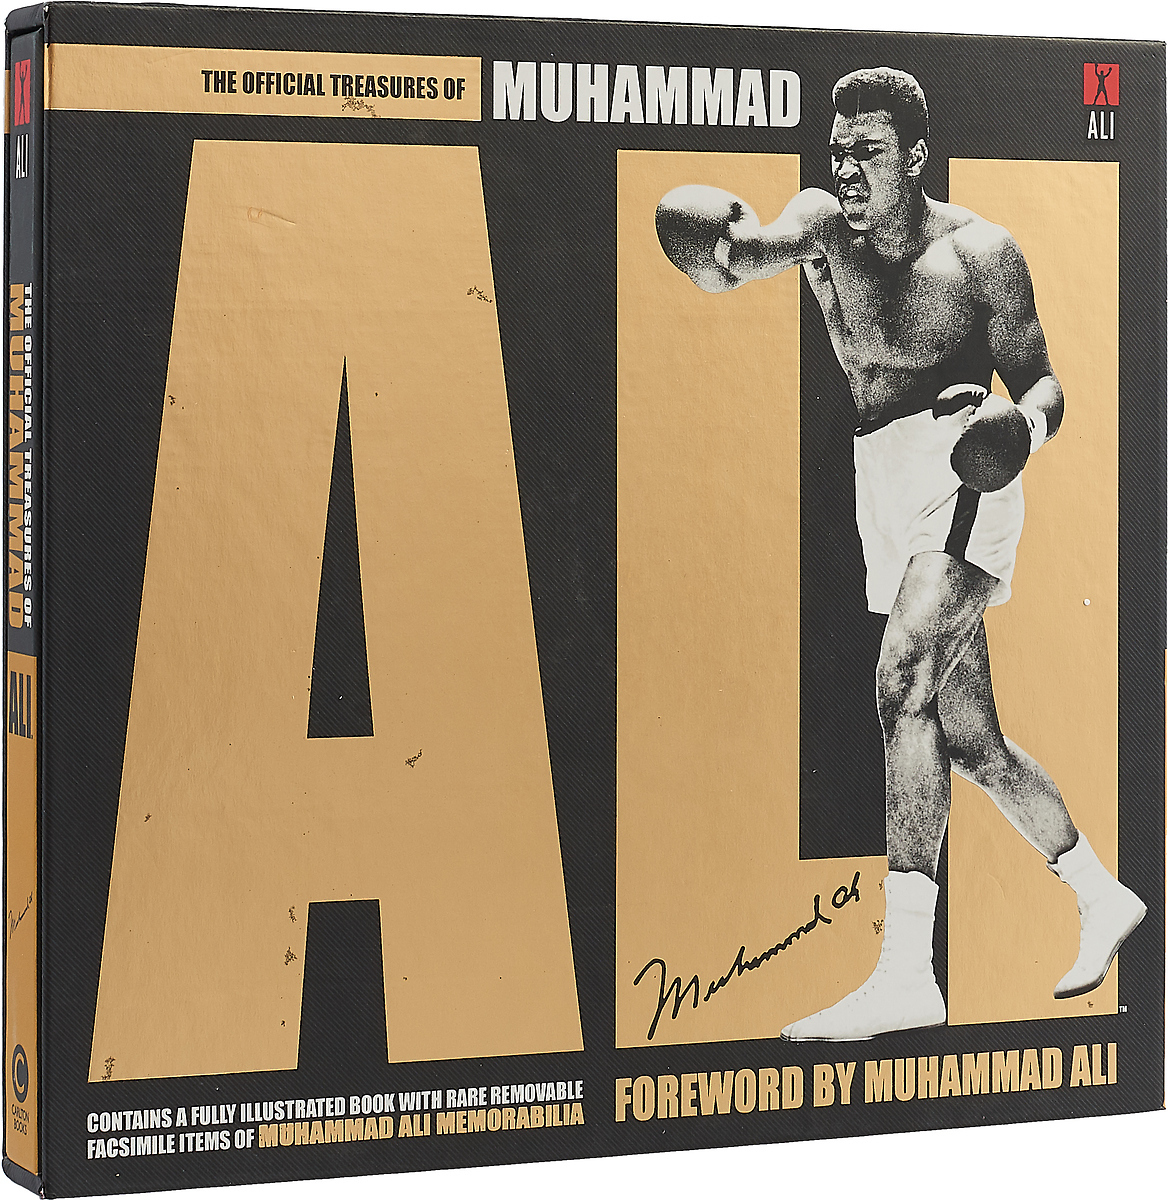 The Official Treasures of Muhammad Ali the official treasures of muhammad ali